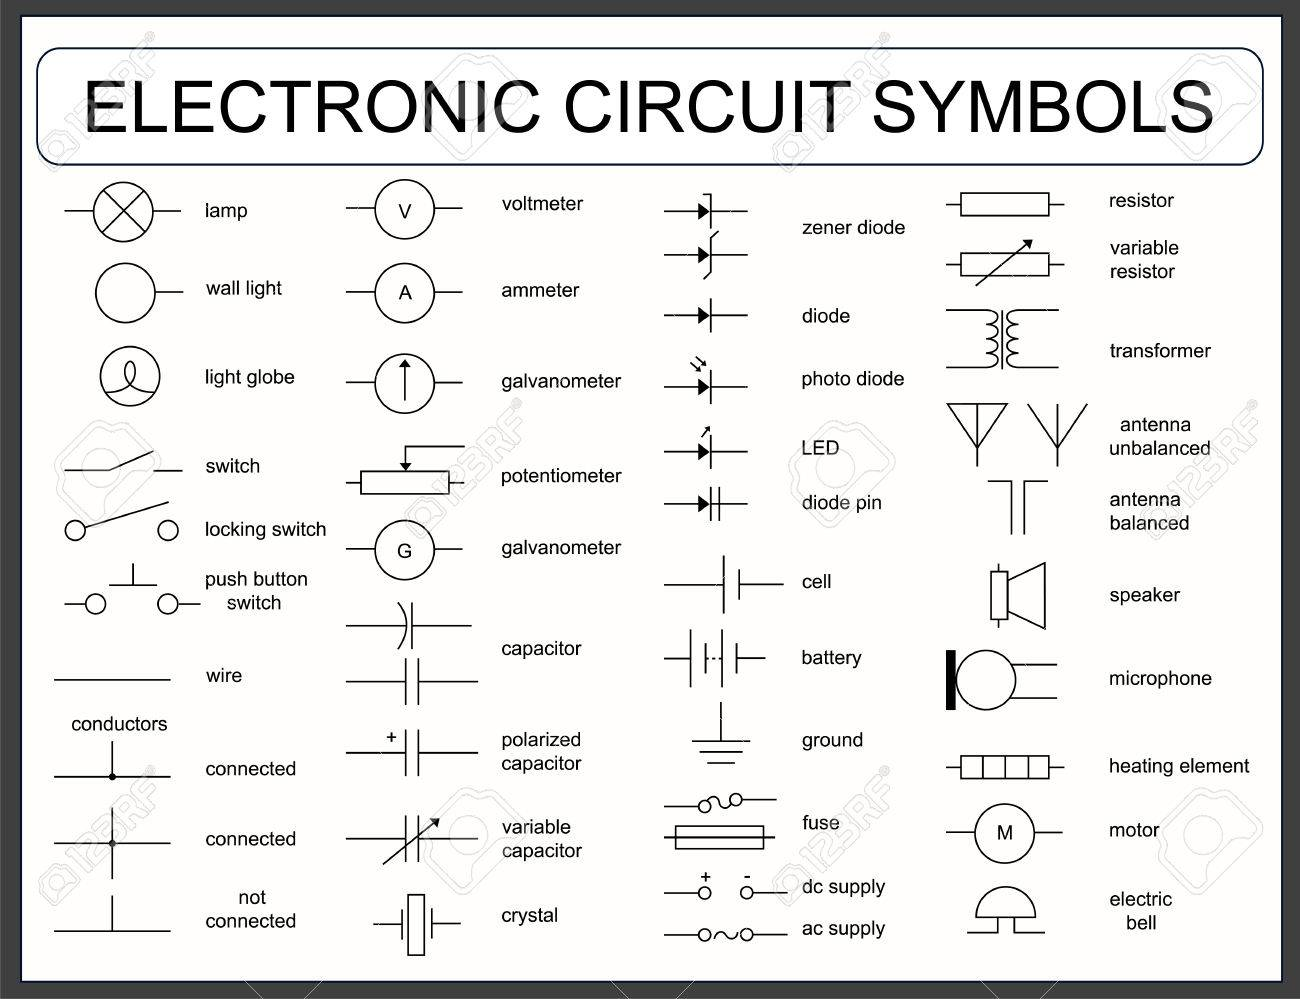 Electronic Circuit Symbols Symbol Chapter 9 Novel Fet Circuits Engineering360 Collection Of Blueprint Royalty Free